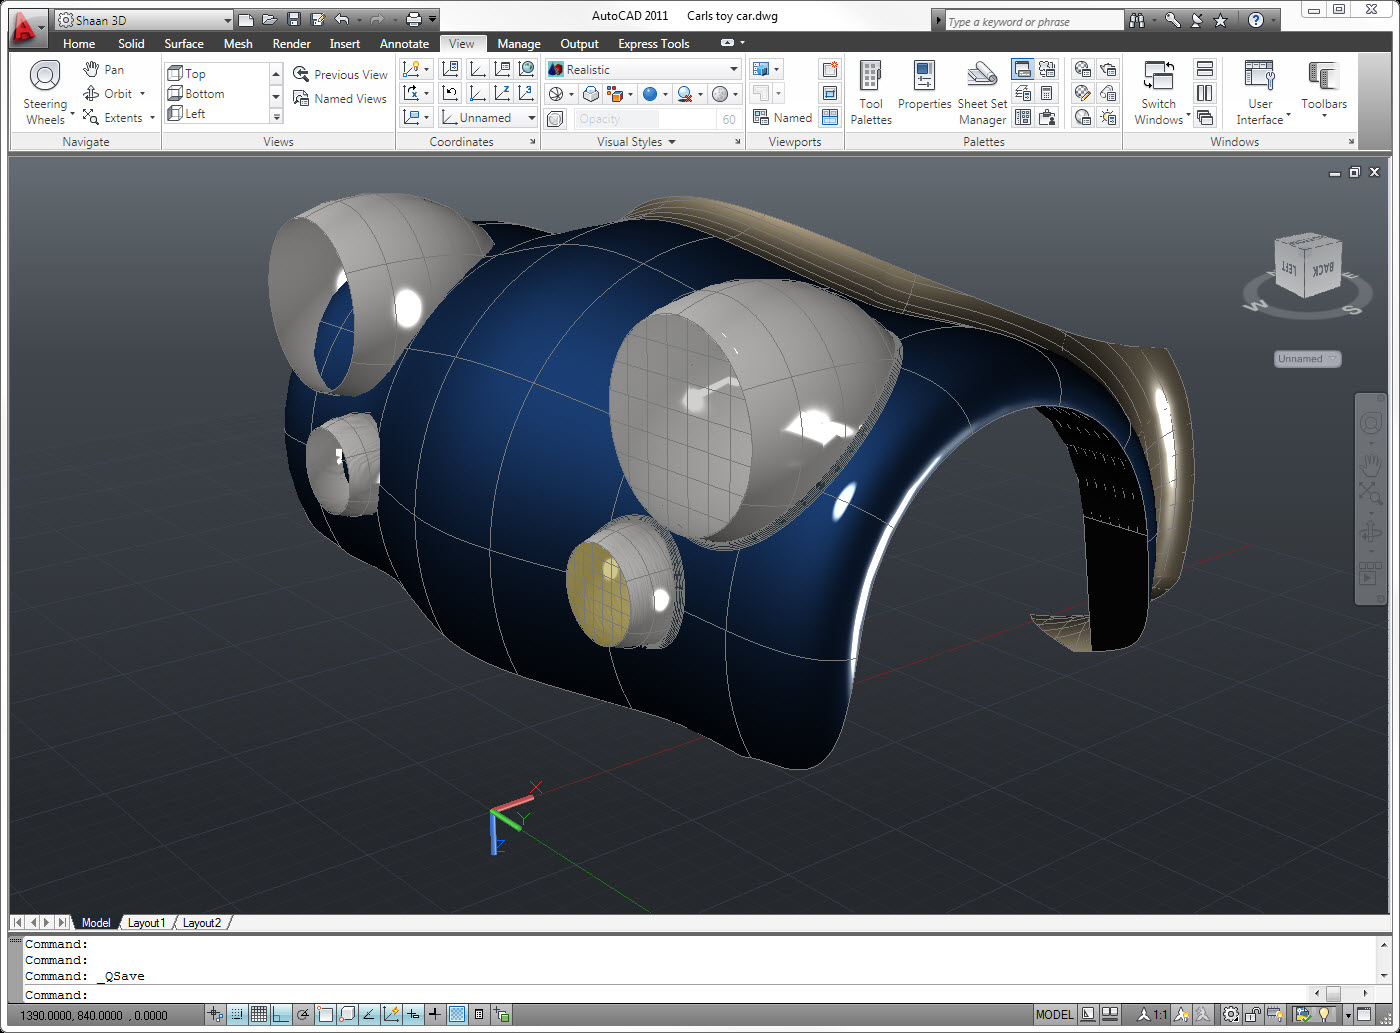 autocad 2011 free download full version